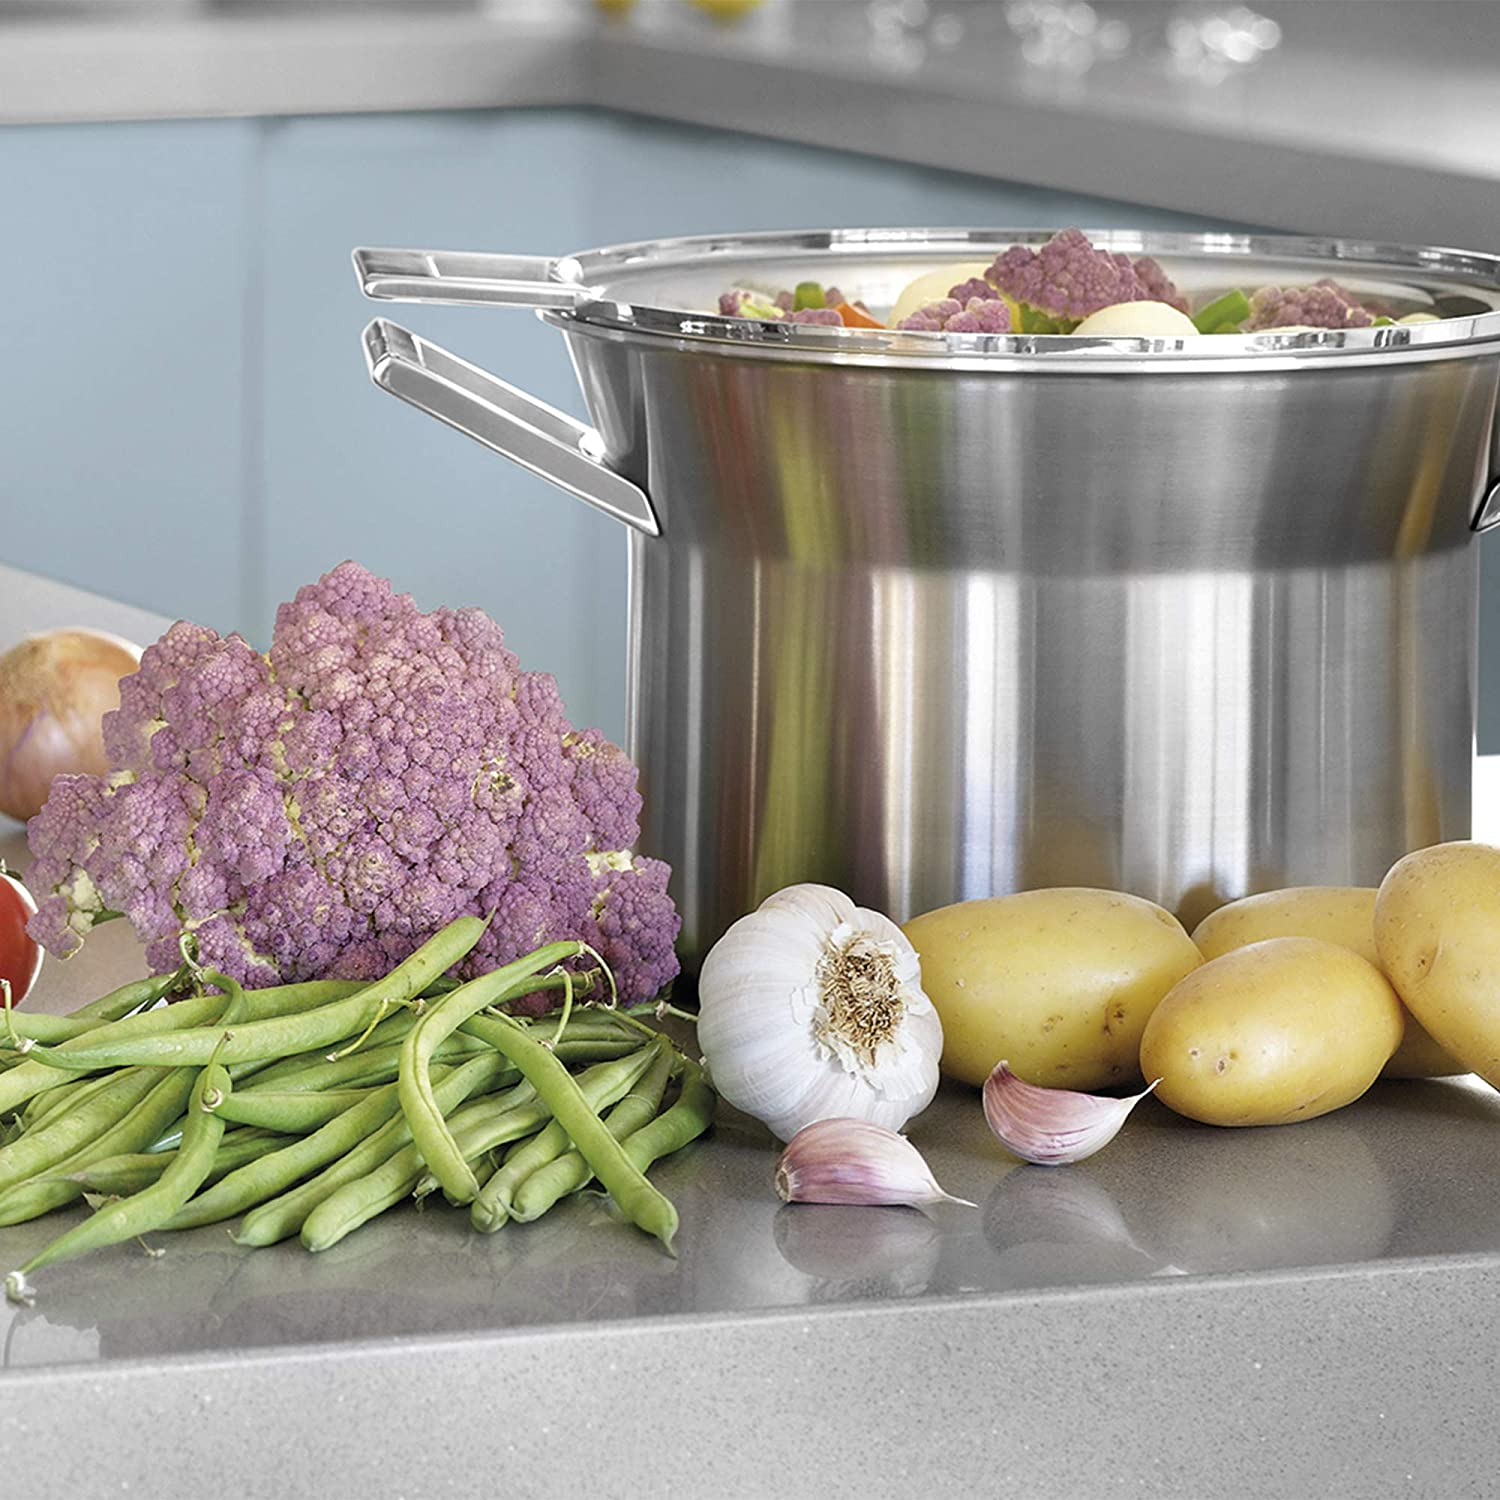 Castey 28 cm 3-Ply Stainless Steel 4-Piece Set including 8.75 Litre Stock Pot// 6 Litre Deep Casserole//Steaming Insert and Lid